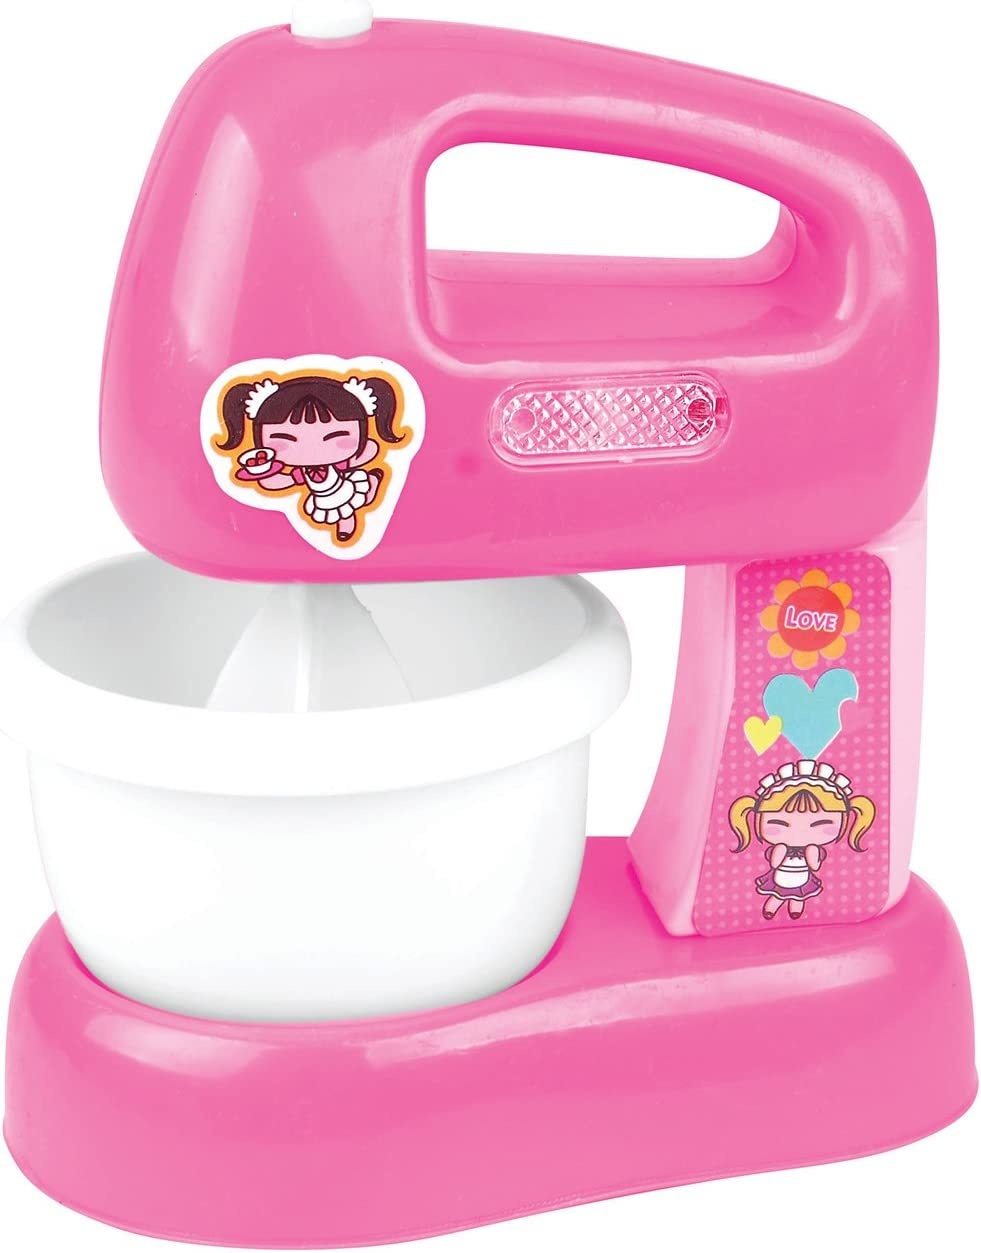 Eddy Toys Water Kettle Kids Childrens Pretend Make A Brew Role Play Kitchen Toy